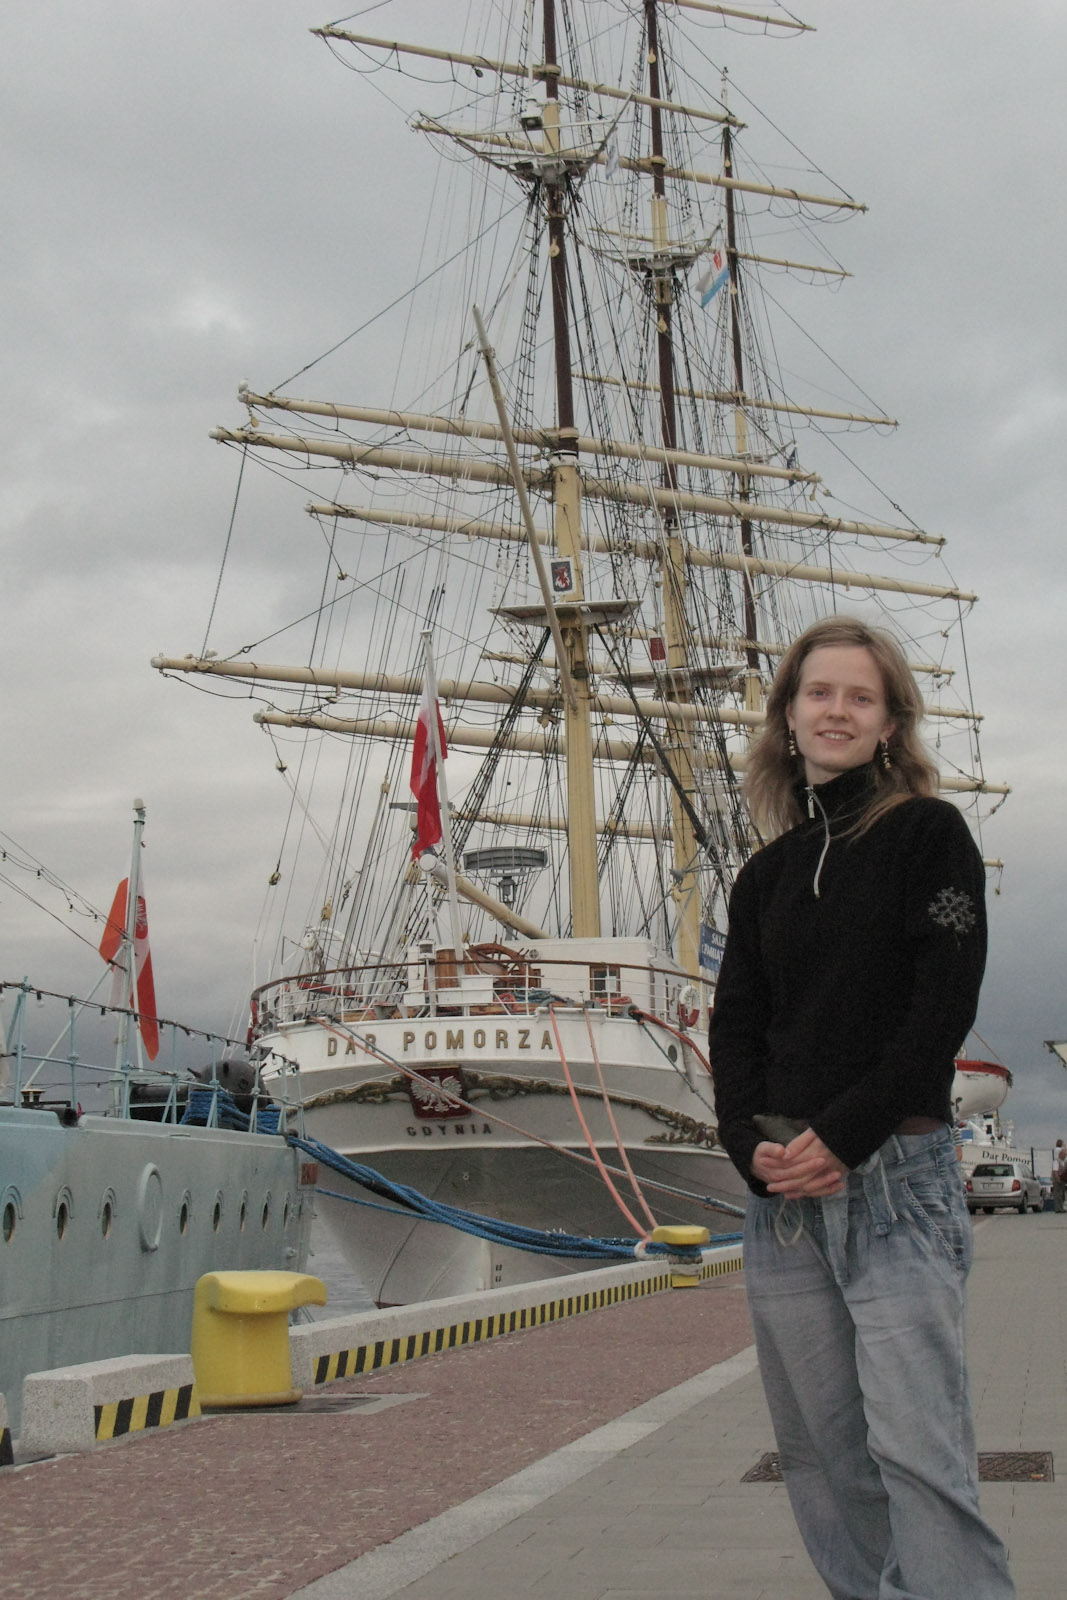 Hanne in the port of Gdynia, KoÅ›ciuszko Wharf